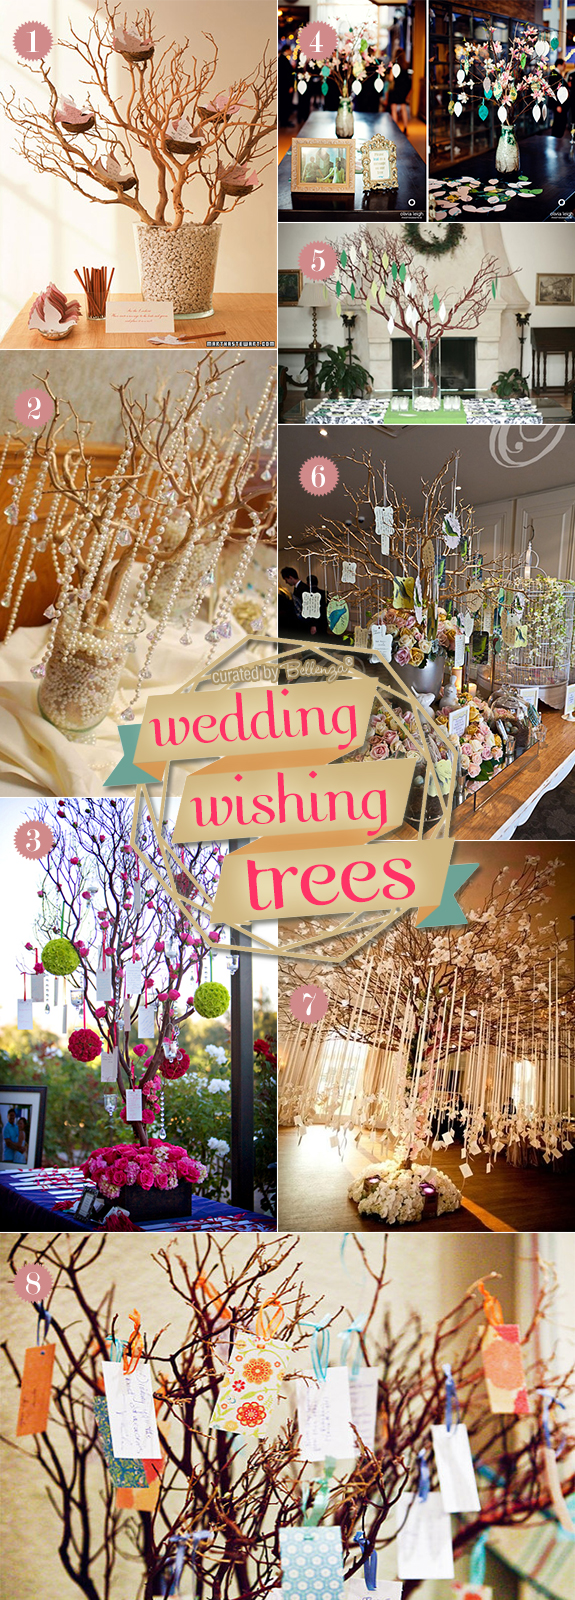 Wedding wish tree ideas from using real trees to tabletop varieties to faux branches in vases